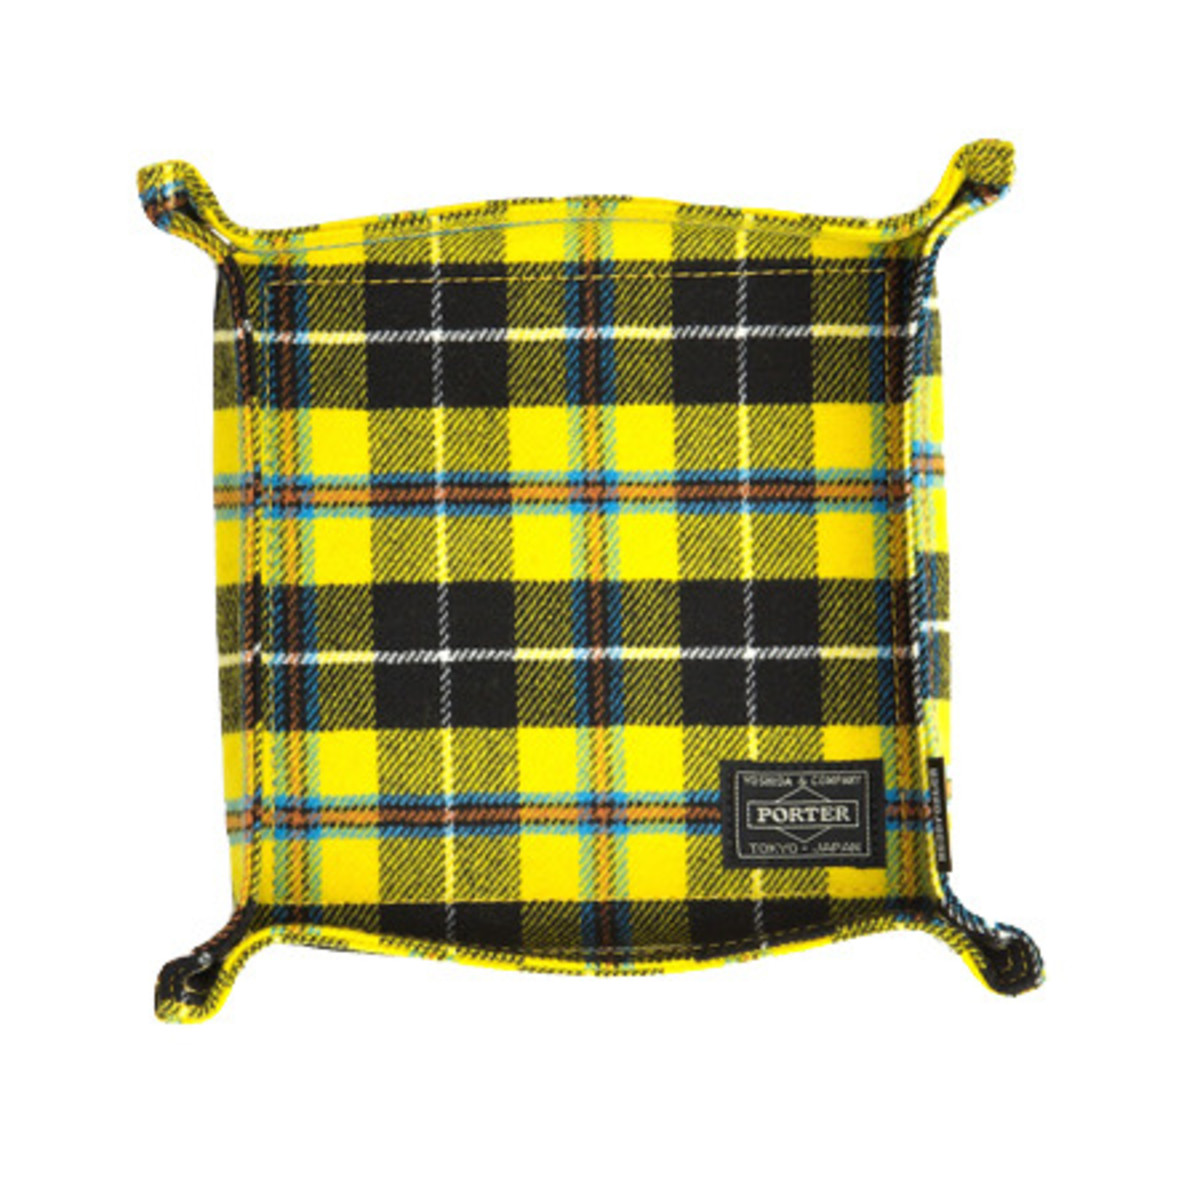 Tray Large Yellow